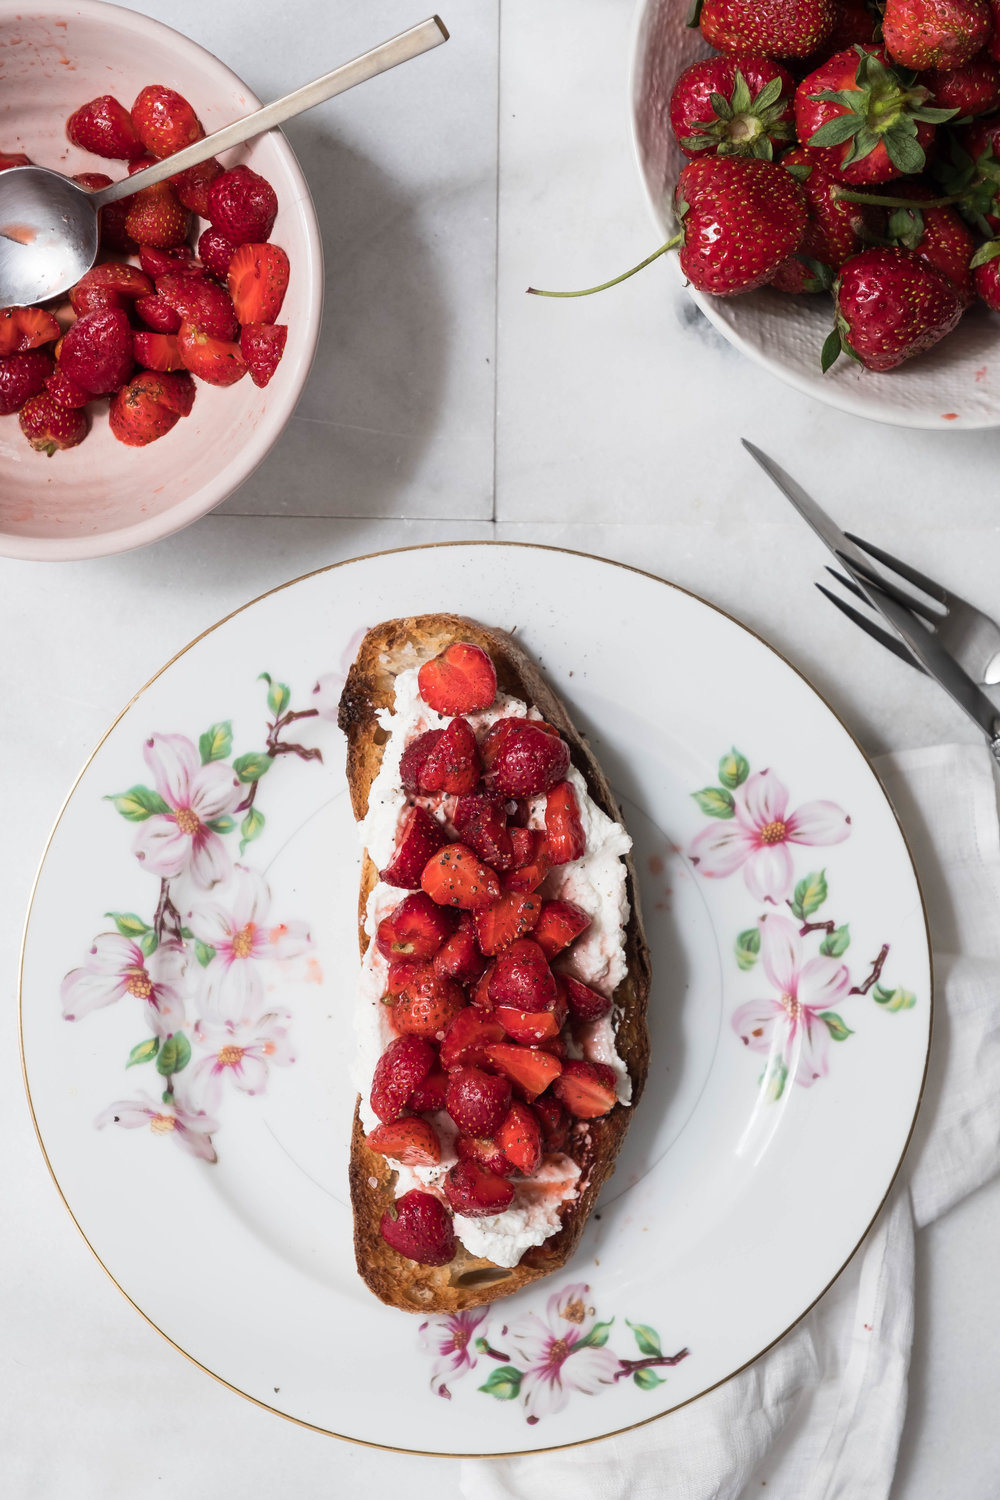 ROSE & IVY Journal Ricotta Toasts Two Ways | Sweet + Savory Strawberry Balsamic Toasts